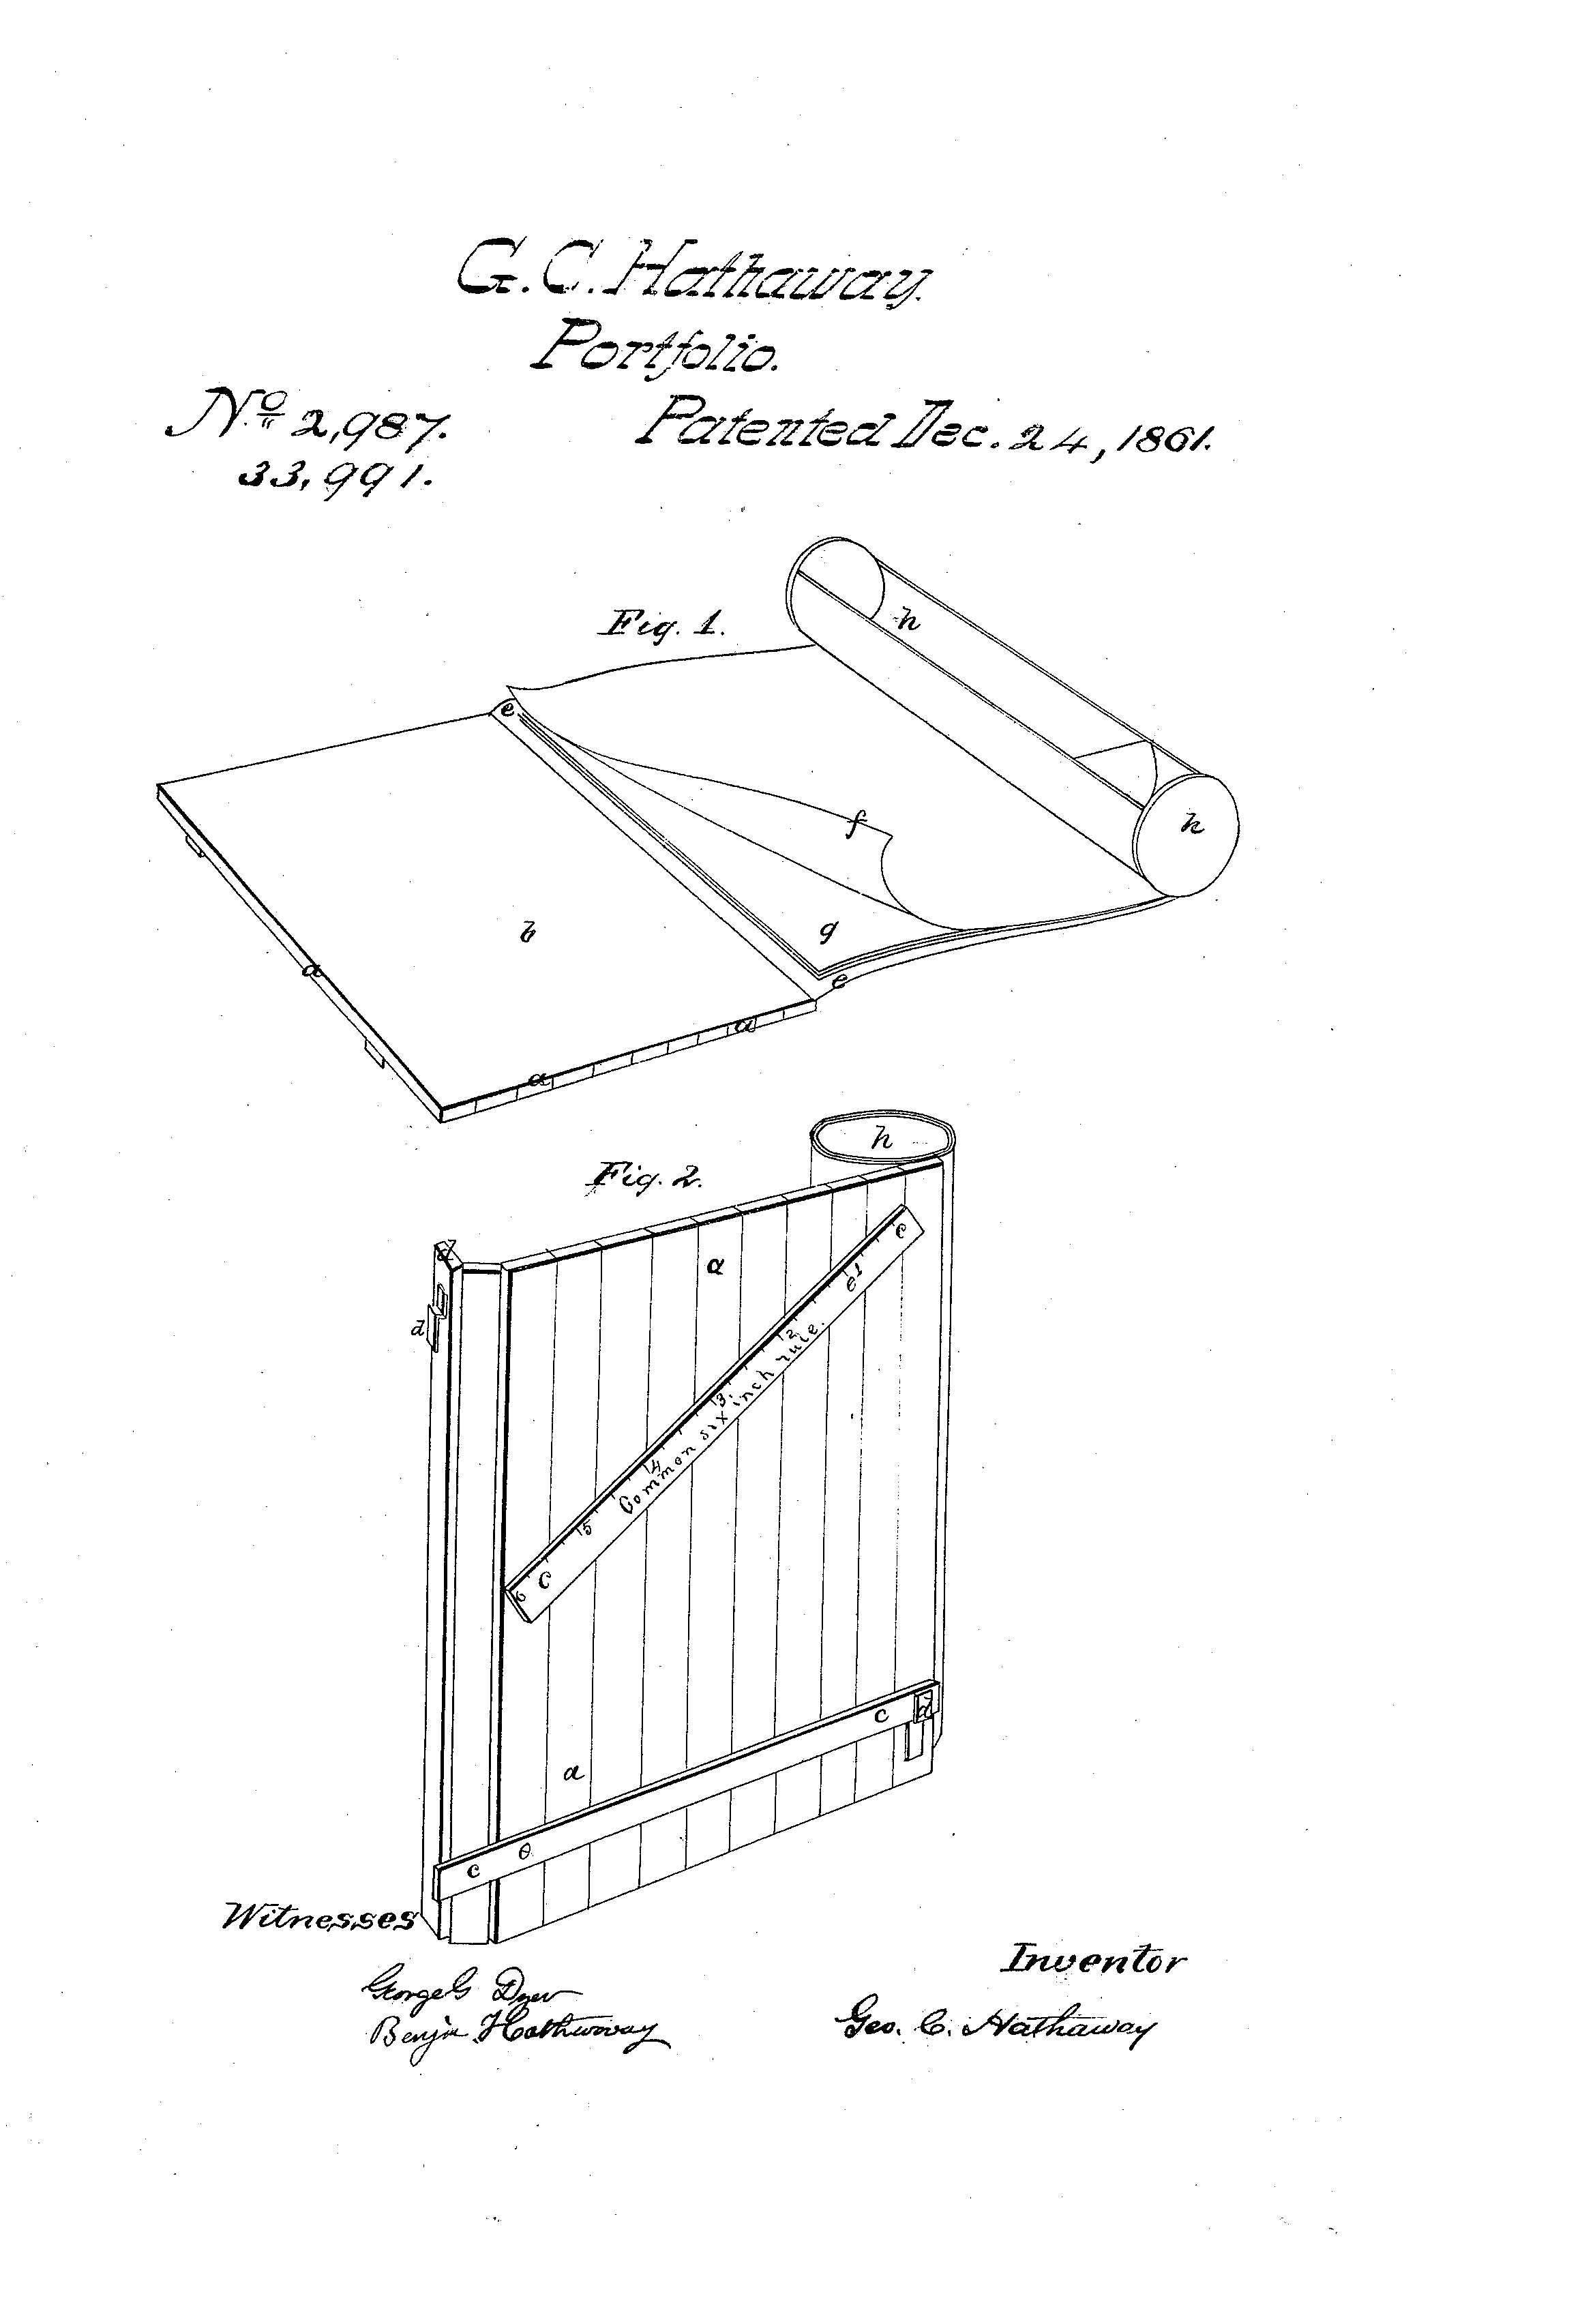 Hathaway Patent Abstract page 1